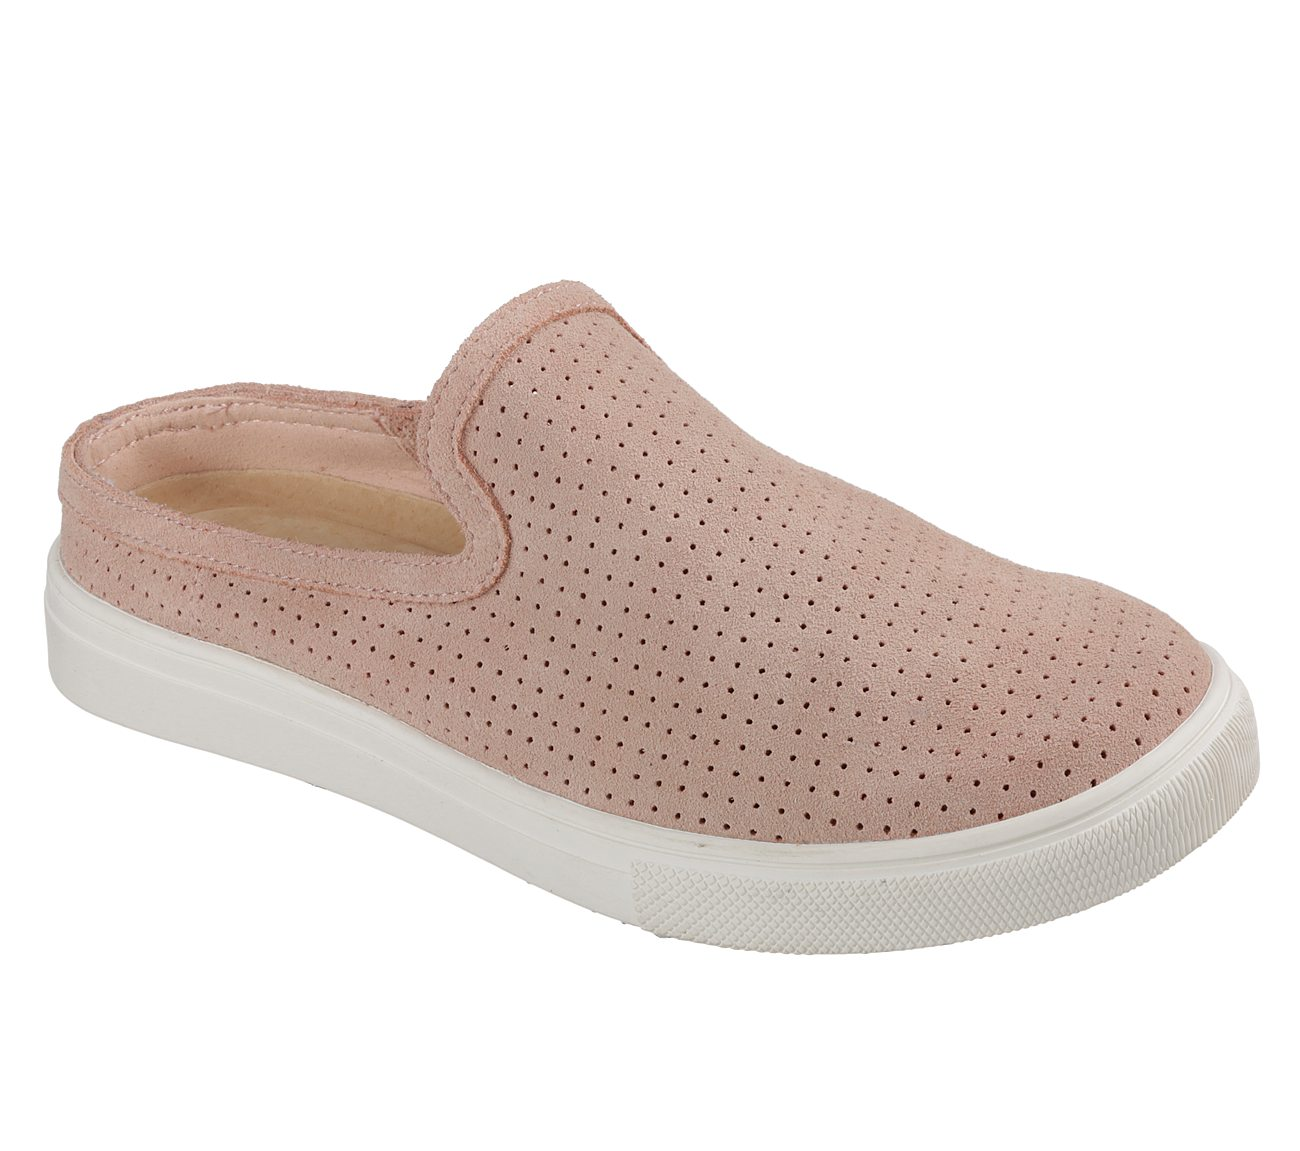 skechers slide on shoes